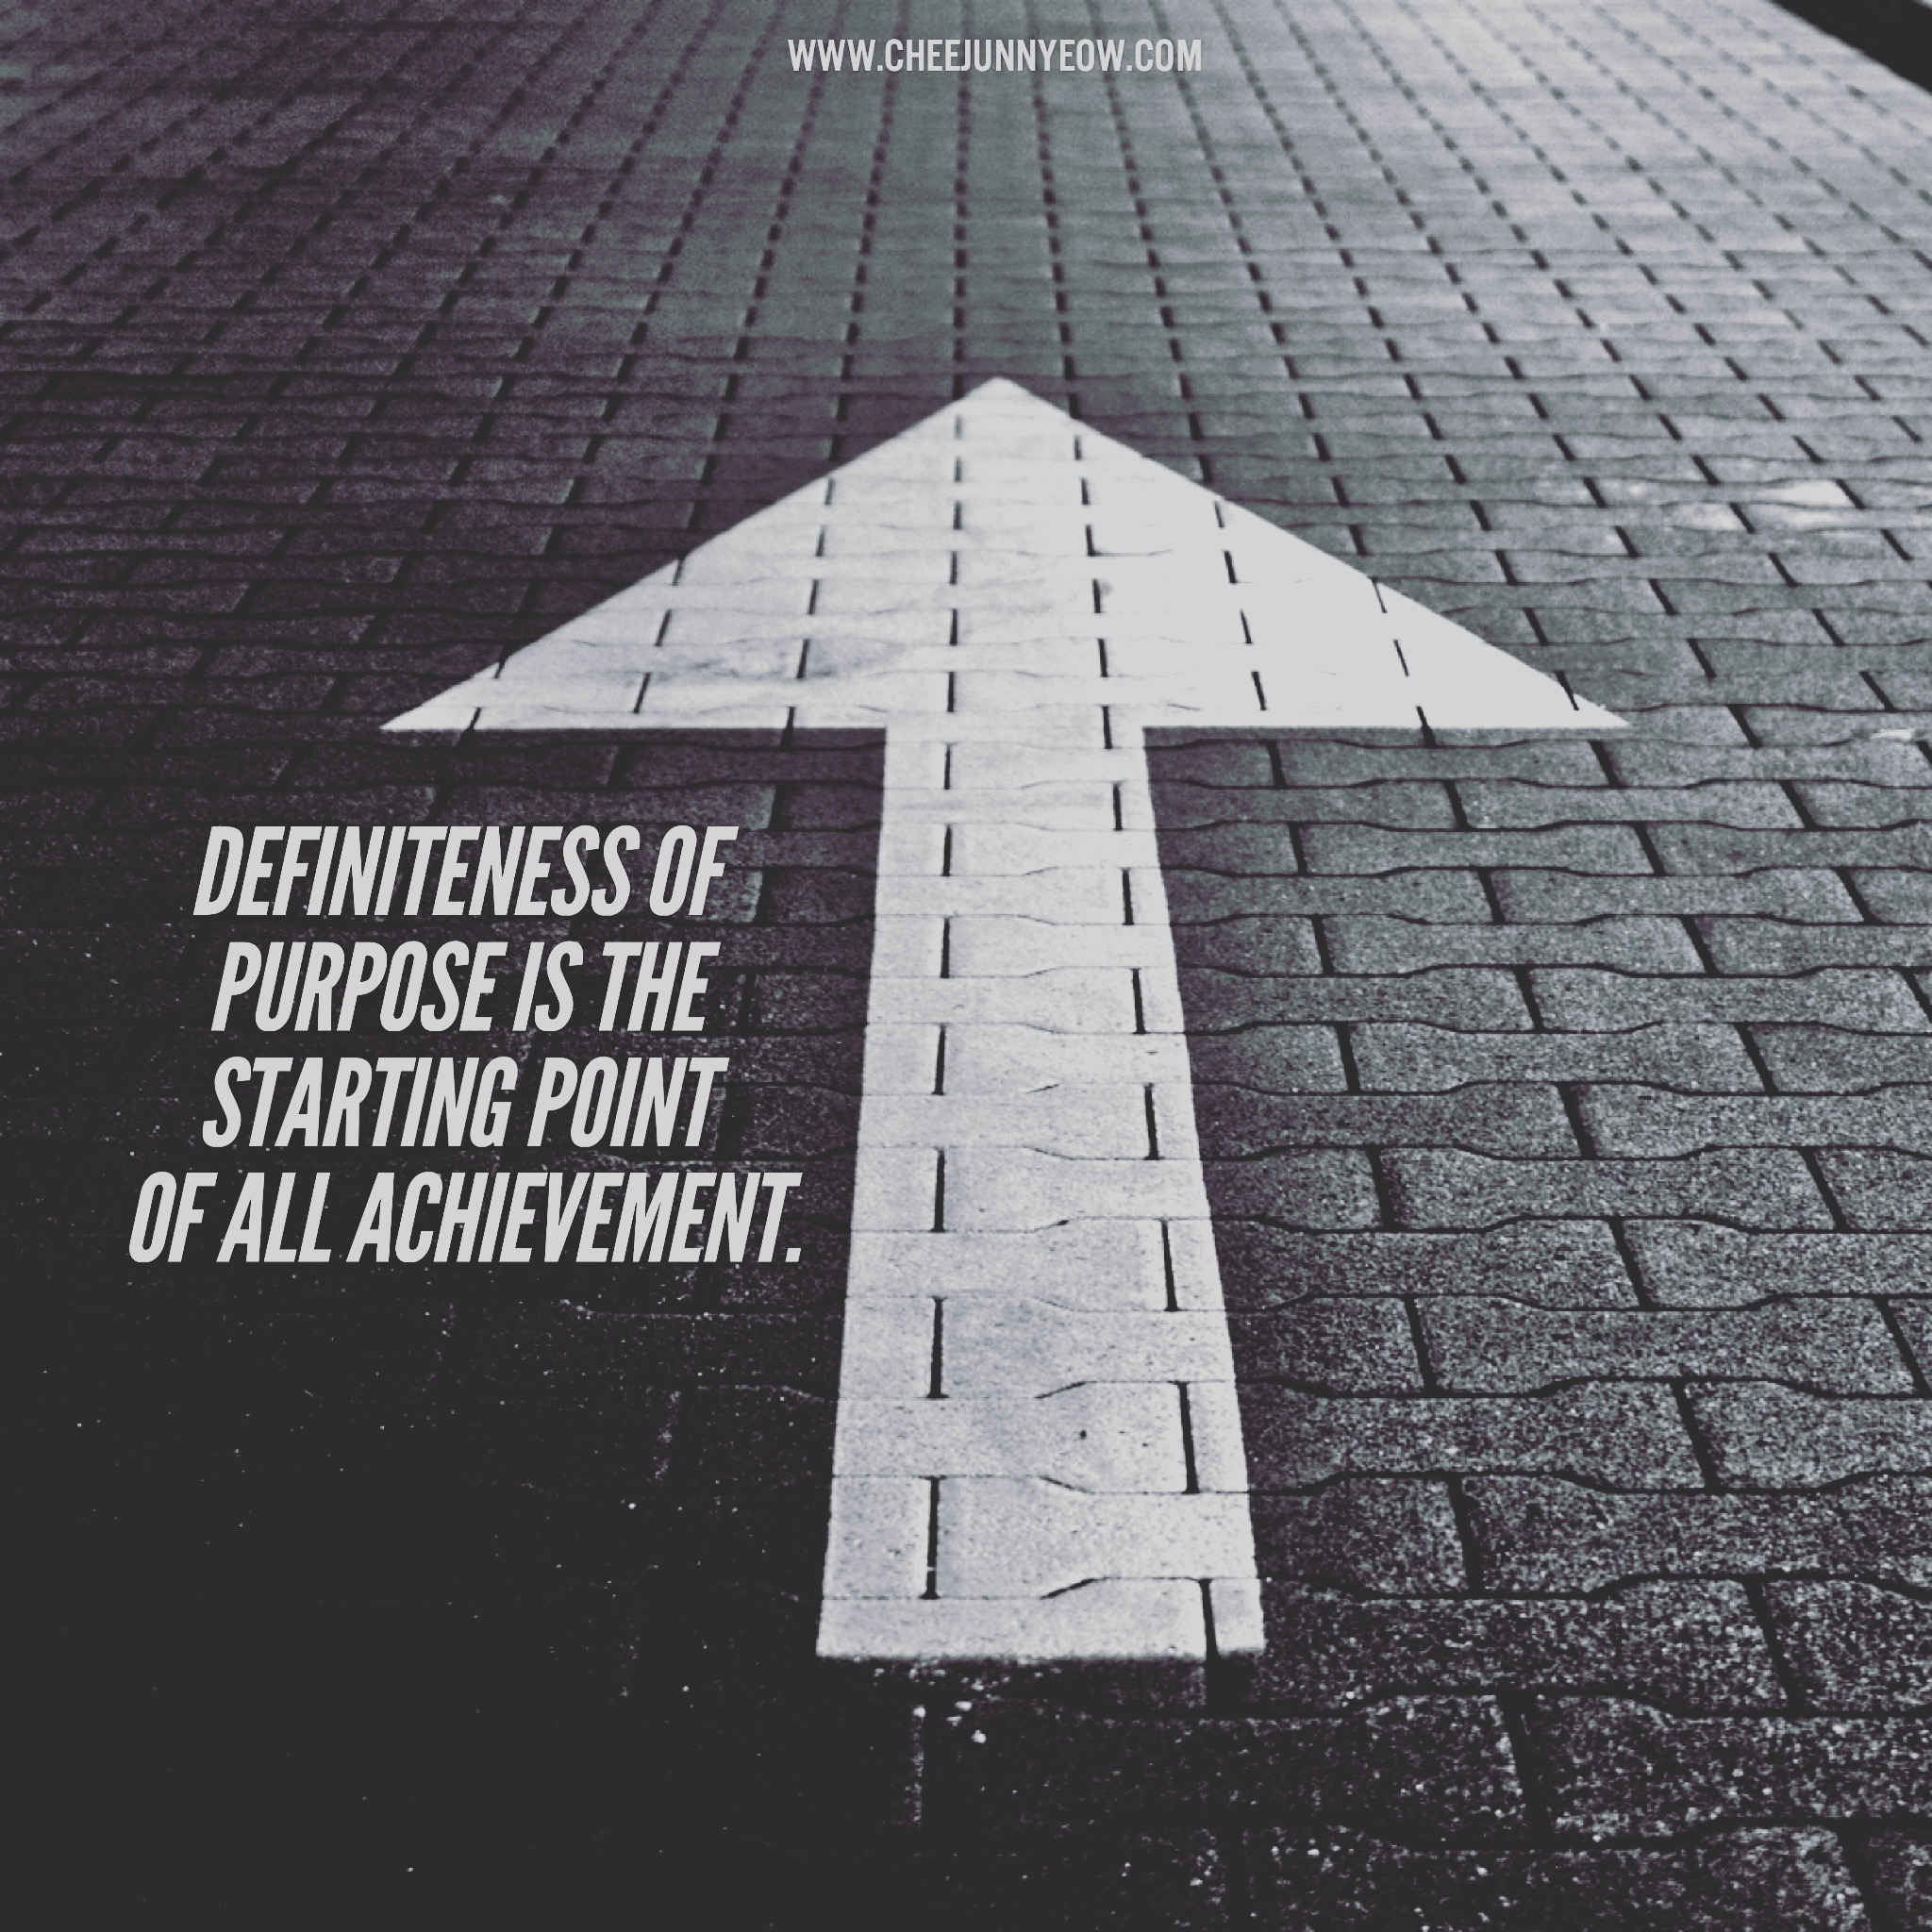 definiteness of purpose in the starting point of all achievements